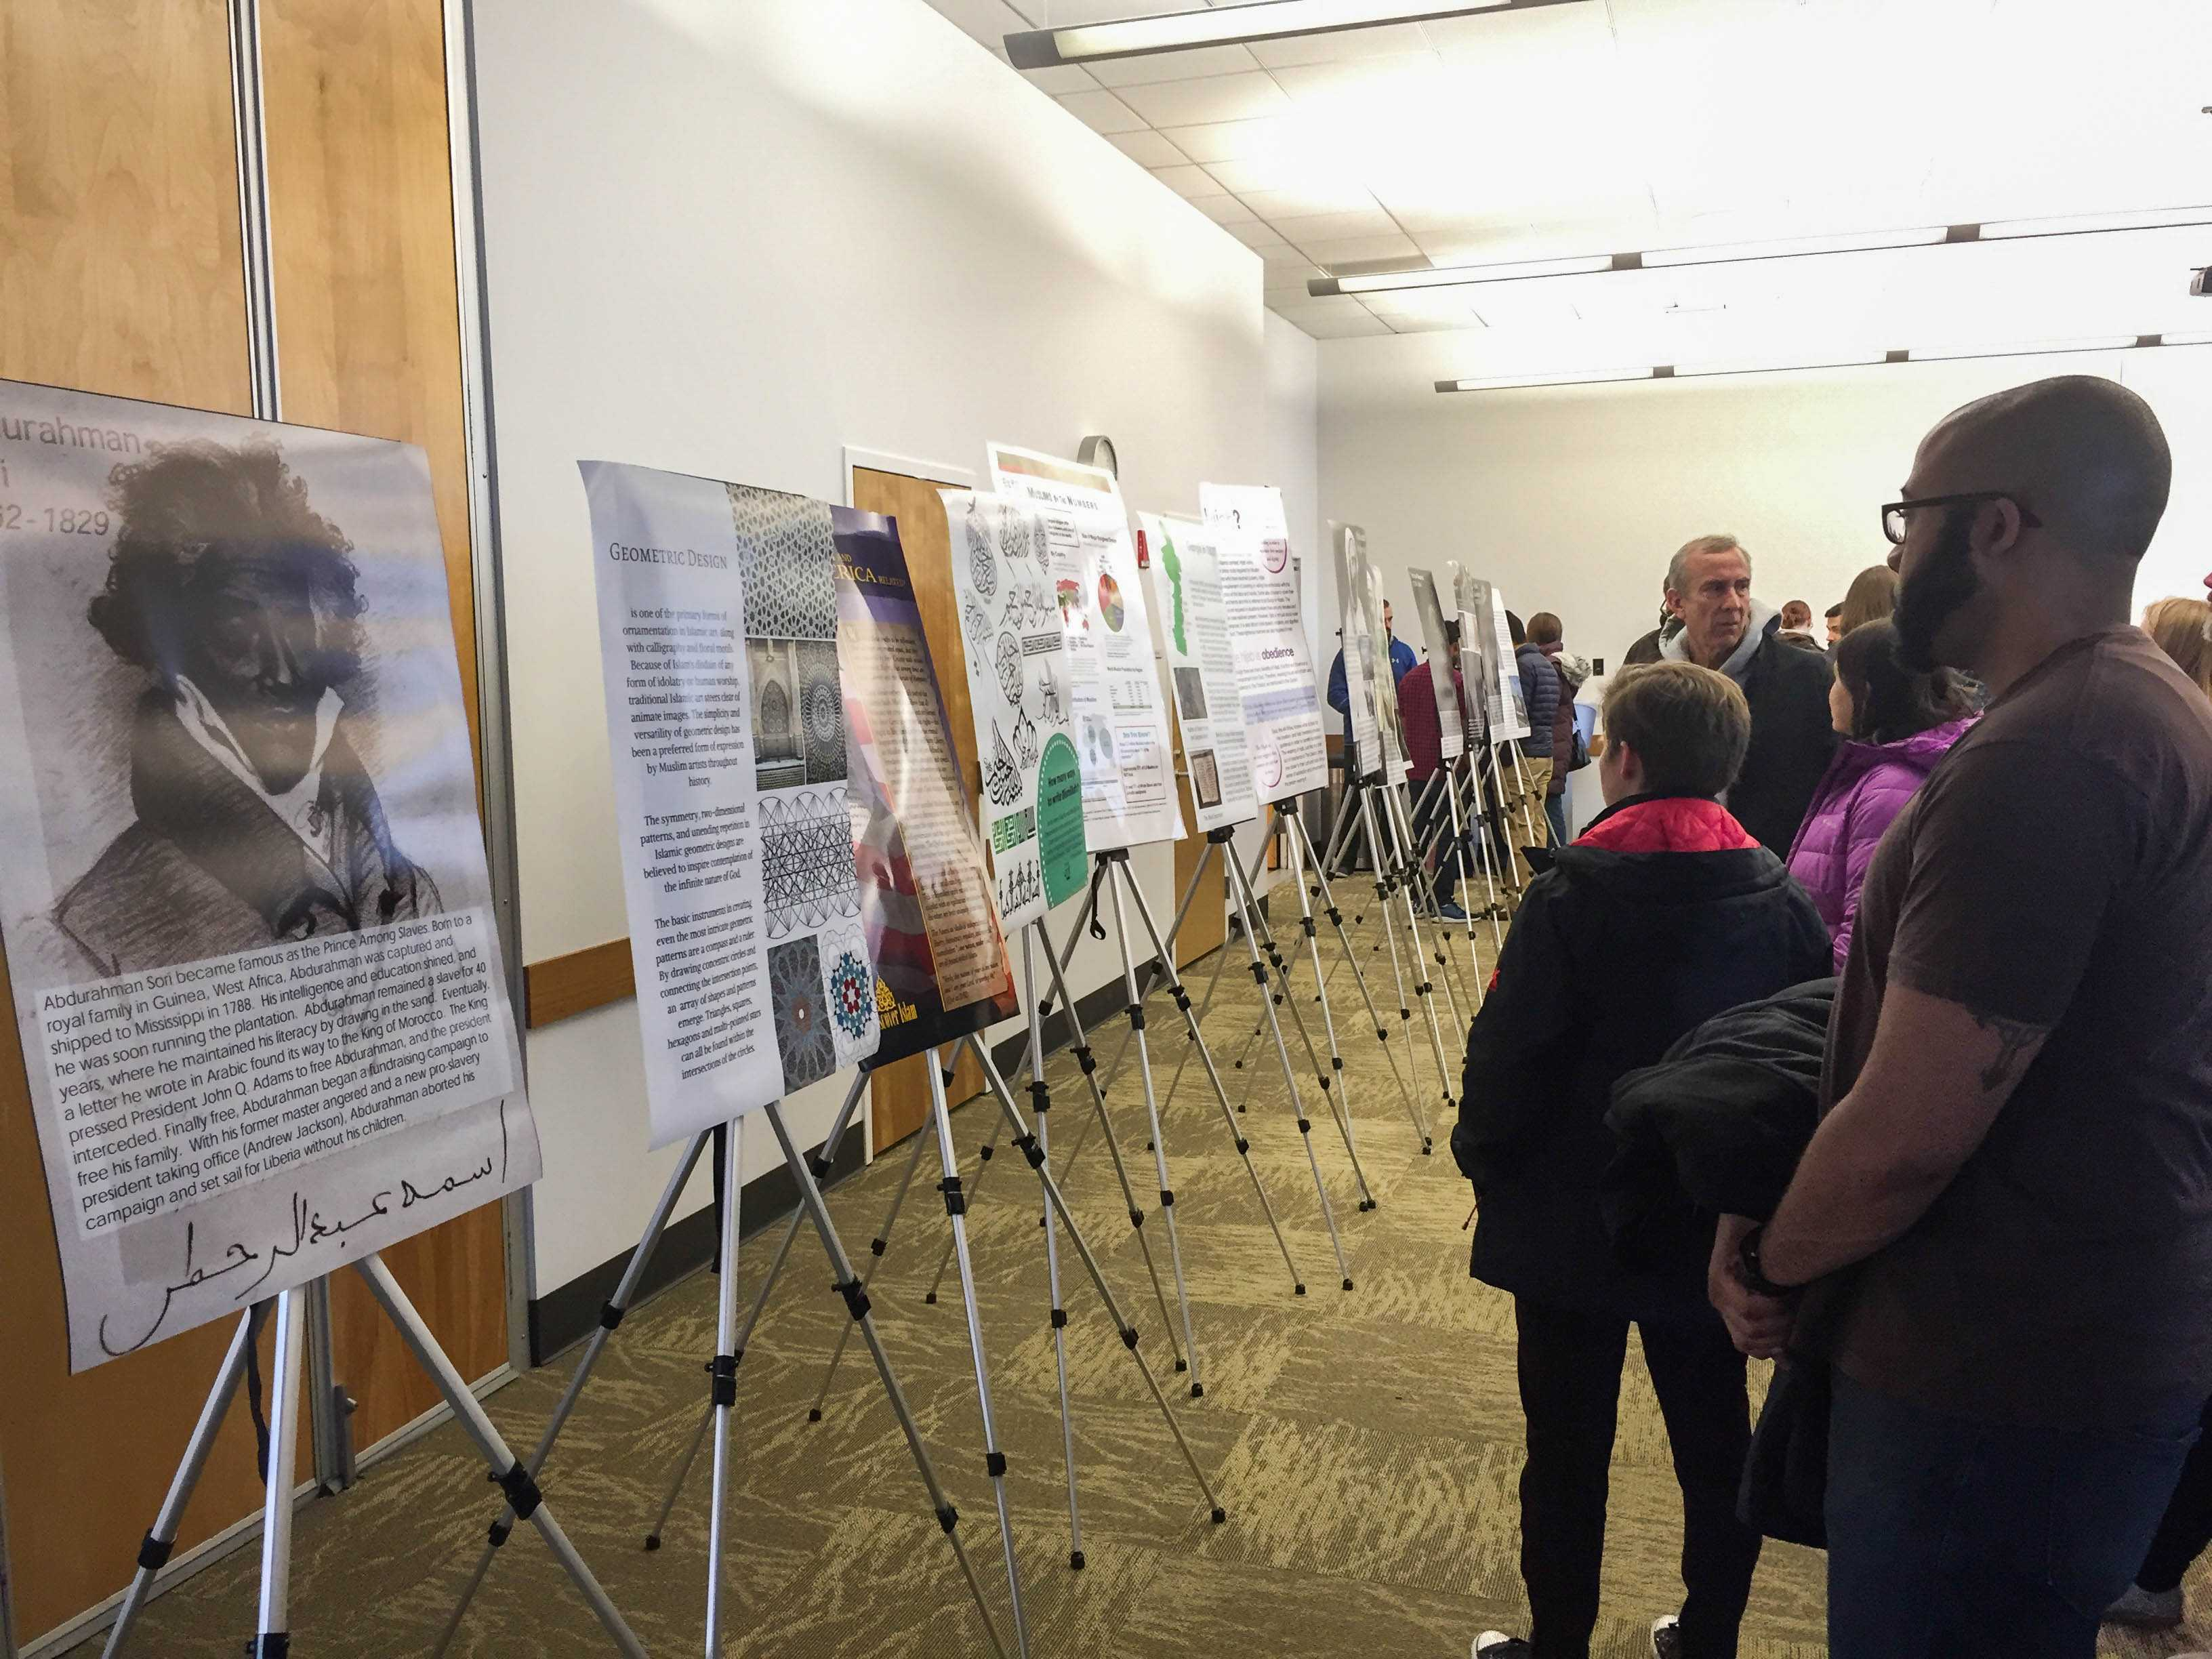 Community members and their families gathered at KYMN and enjoyed food, activities, and a poster exhibit on the history of Muslims in Early America.